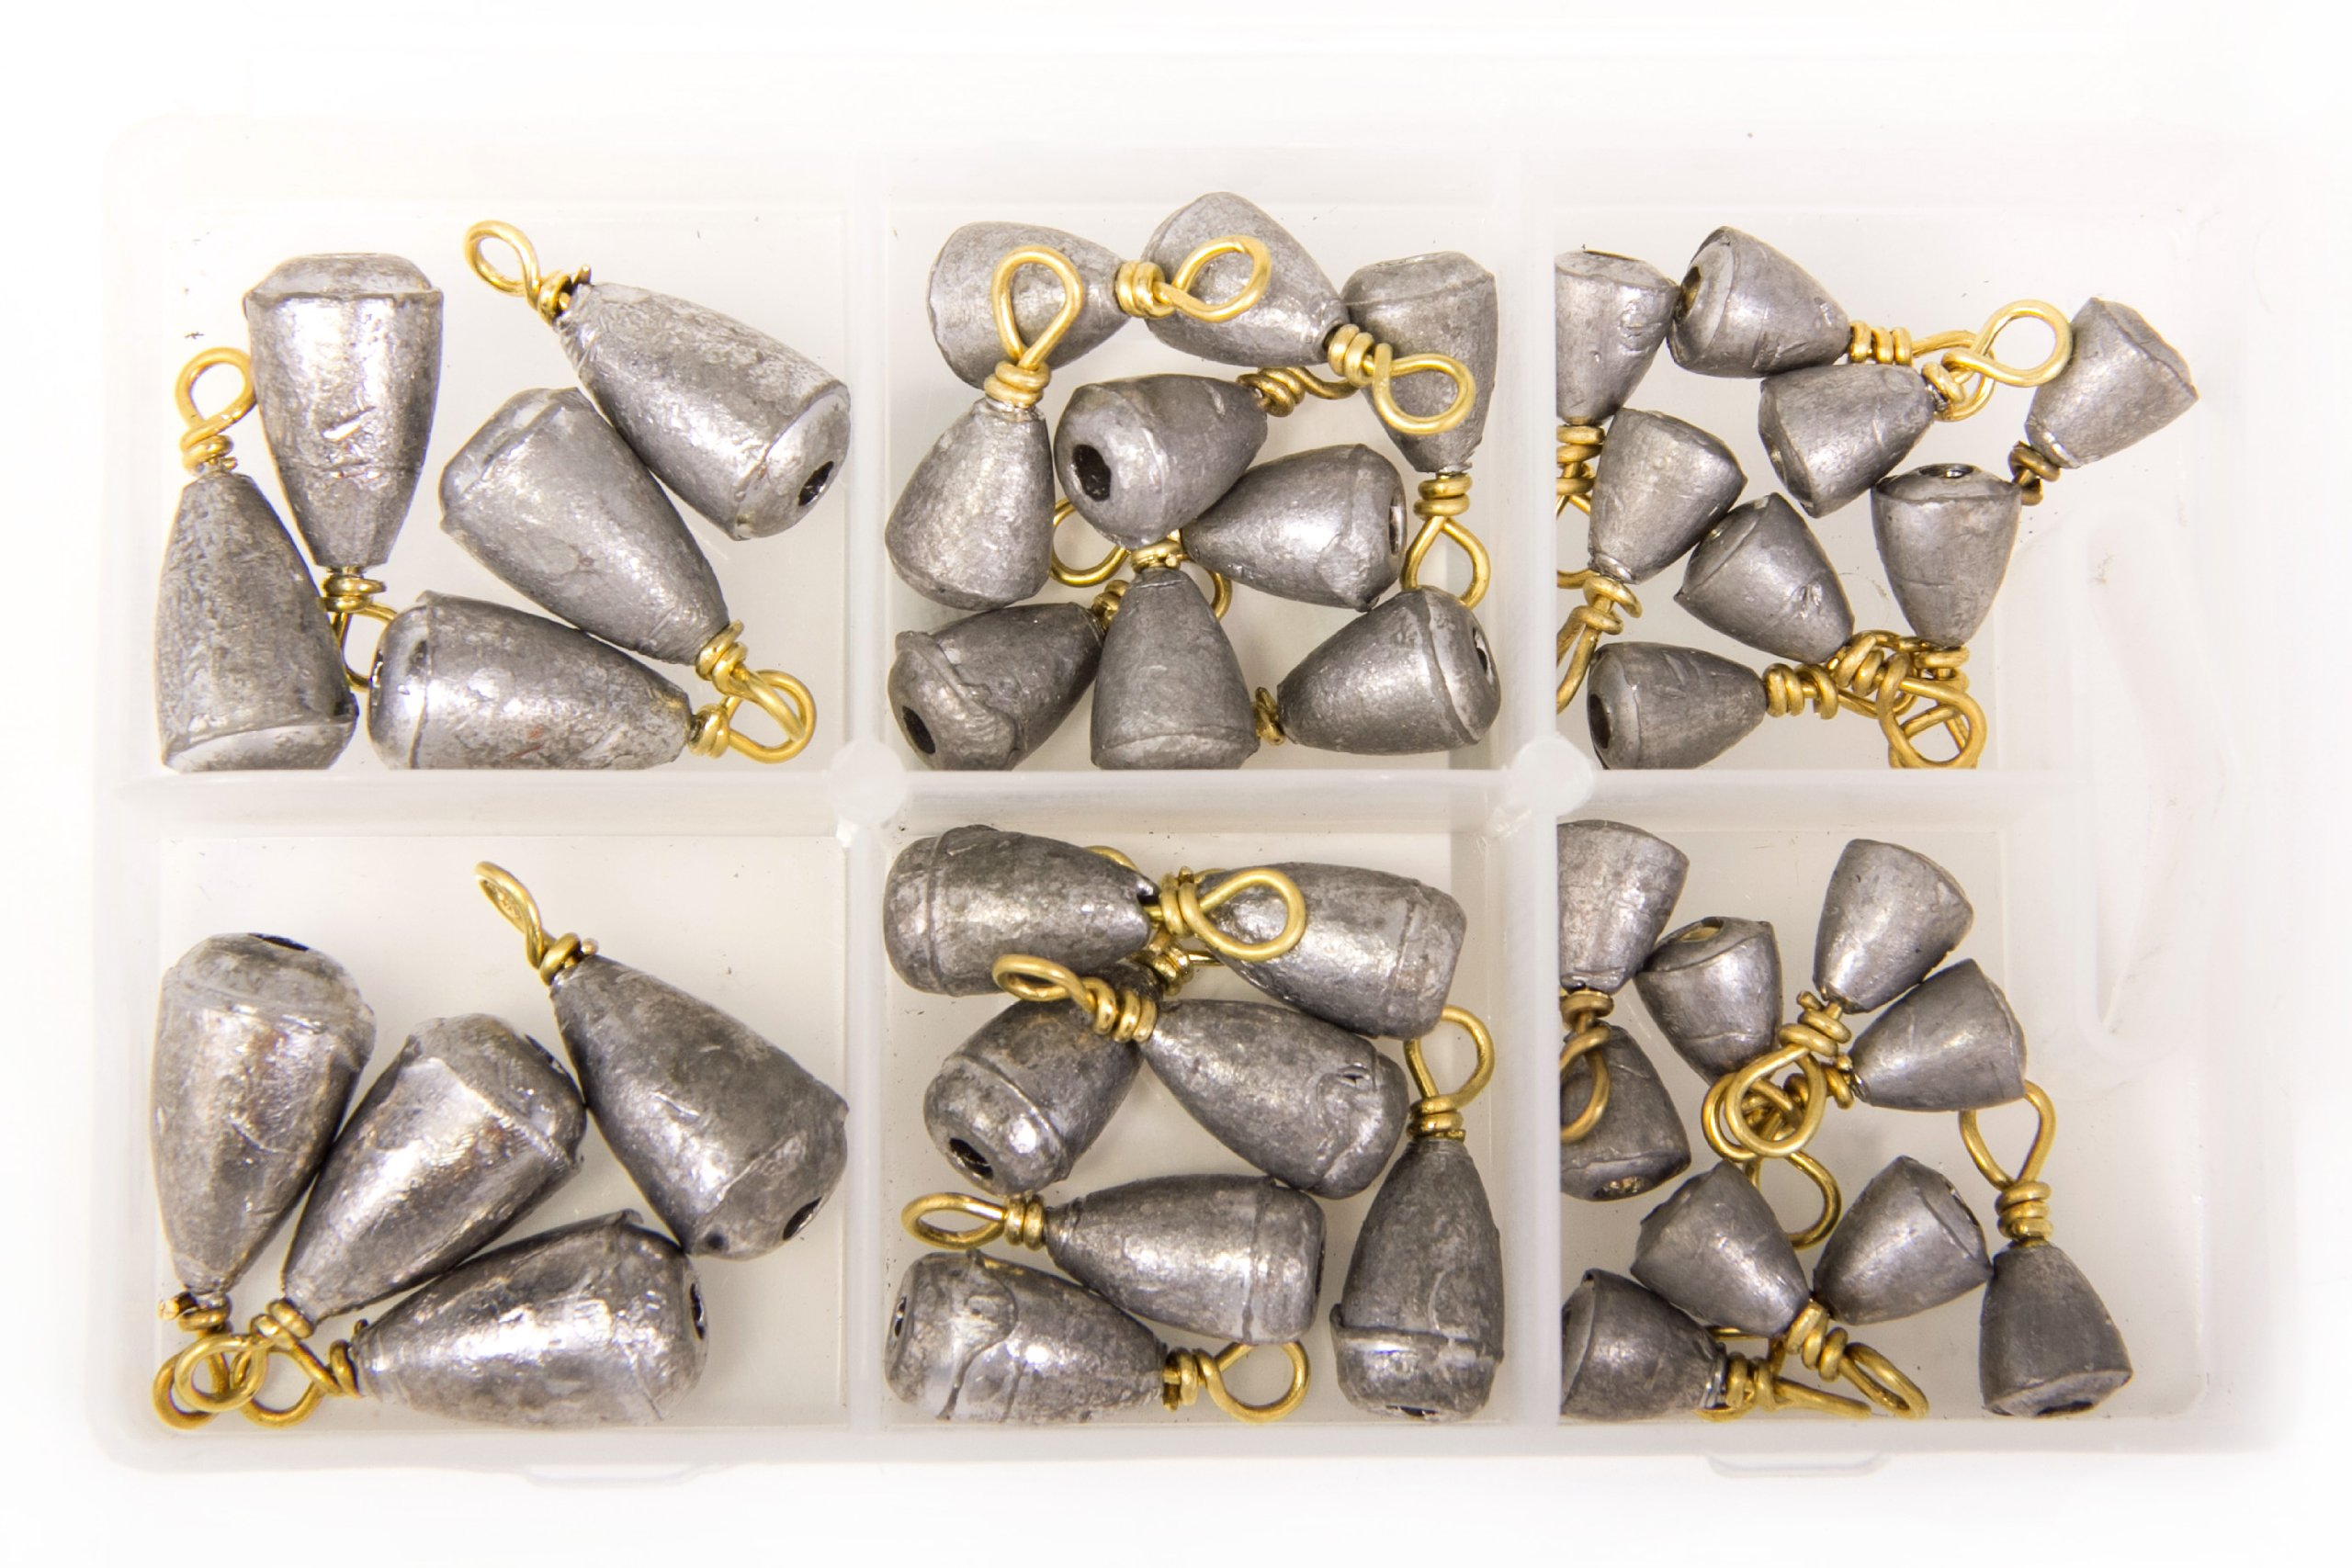 Bullet Weights Bass Casting Sinker Kit (42 Pieces)